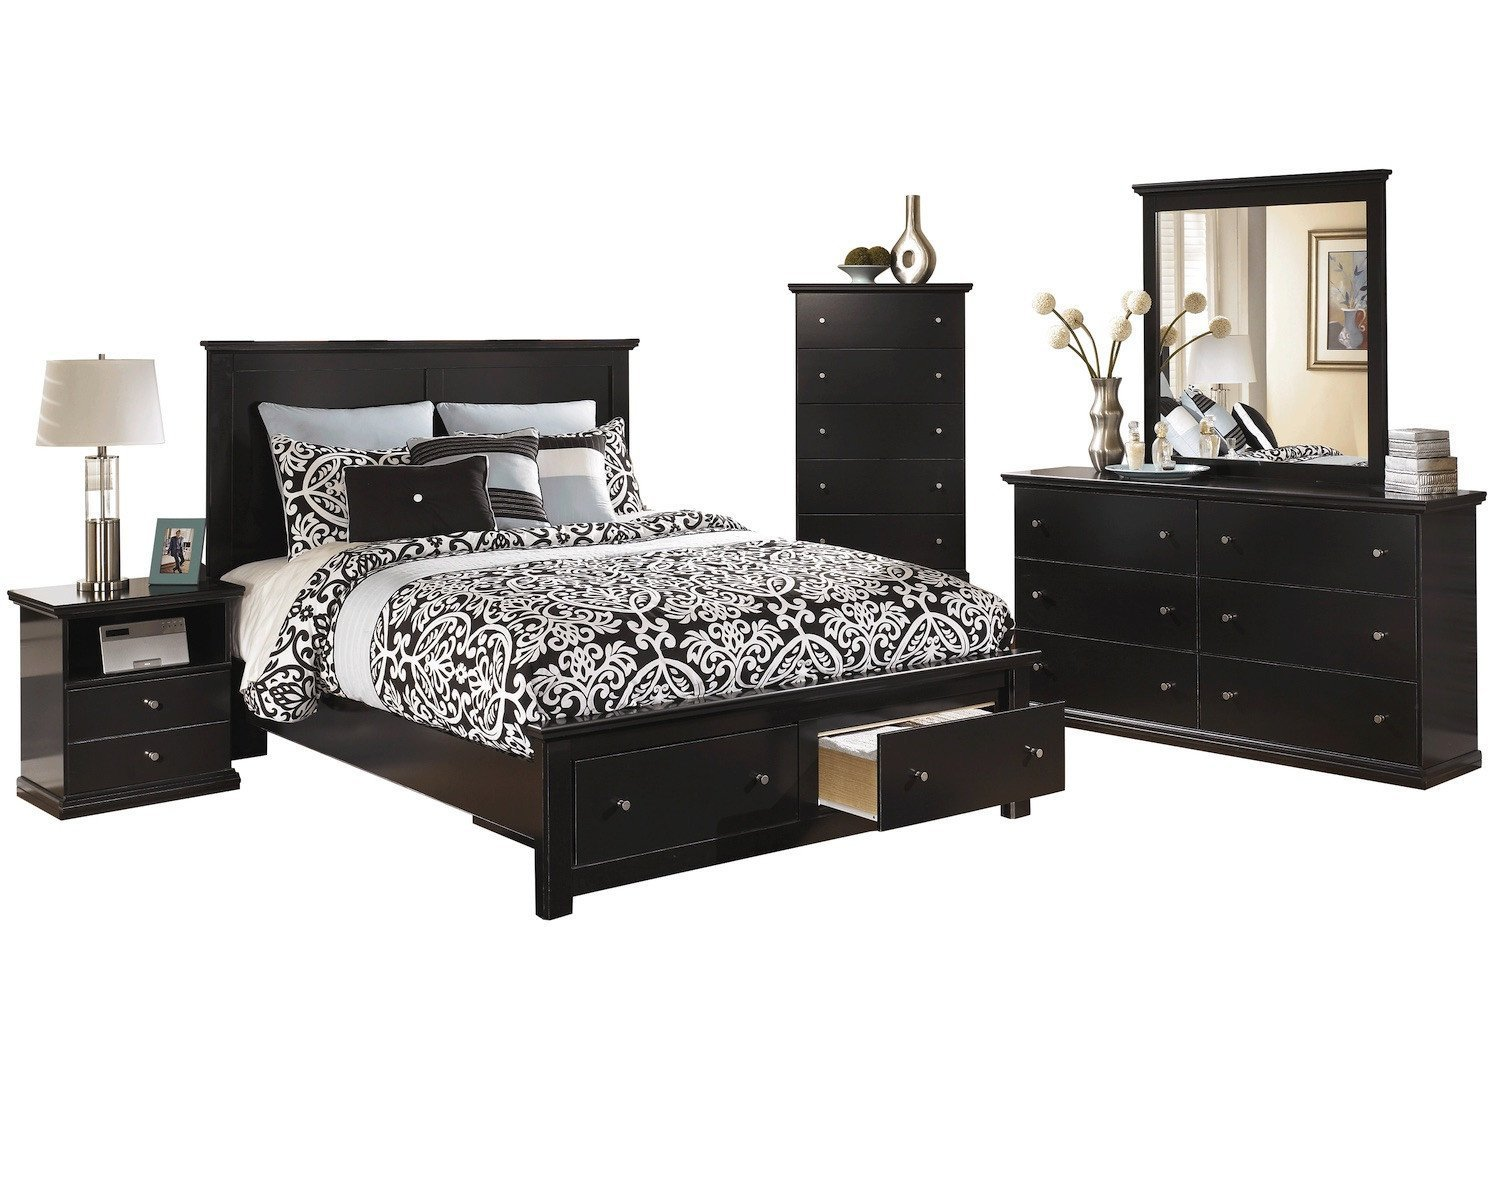 Amazon com ashley maribel 5 pc queen storage bed bedroom set with chest in black kitchen dining